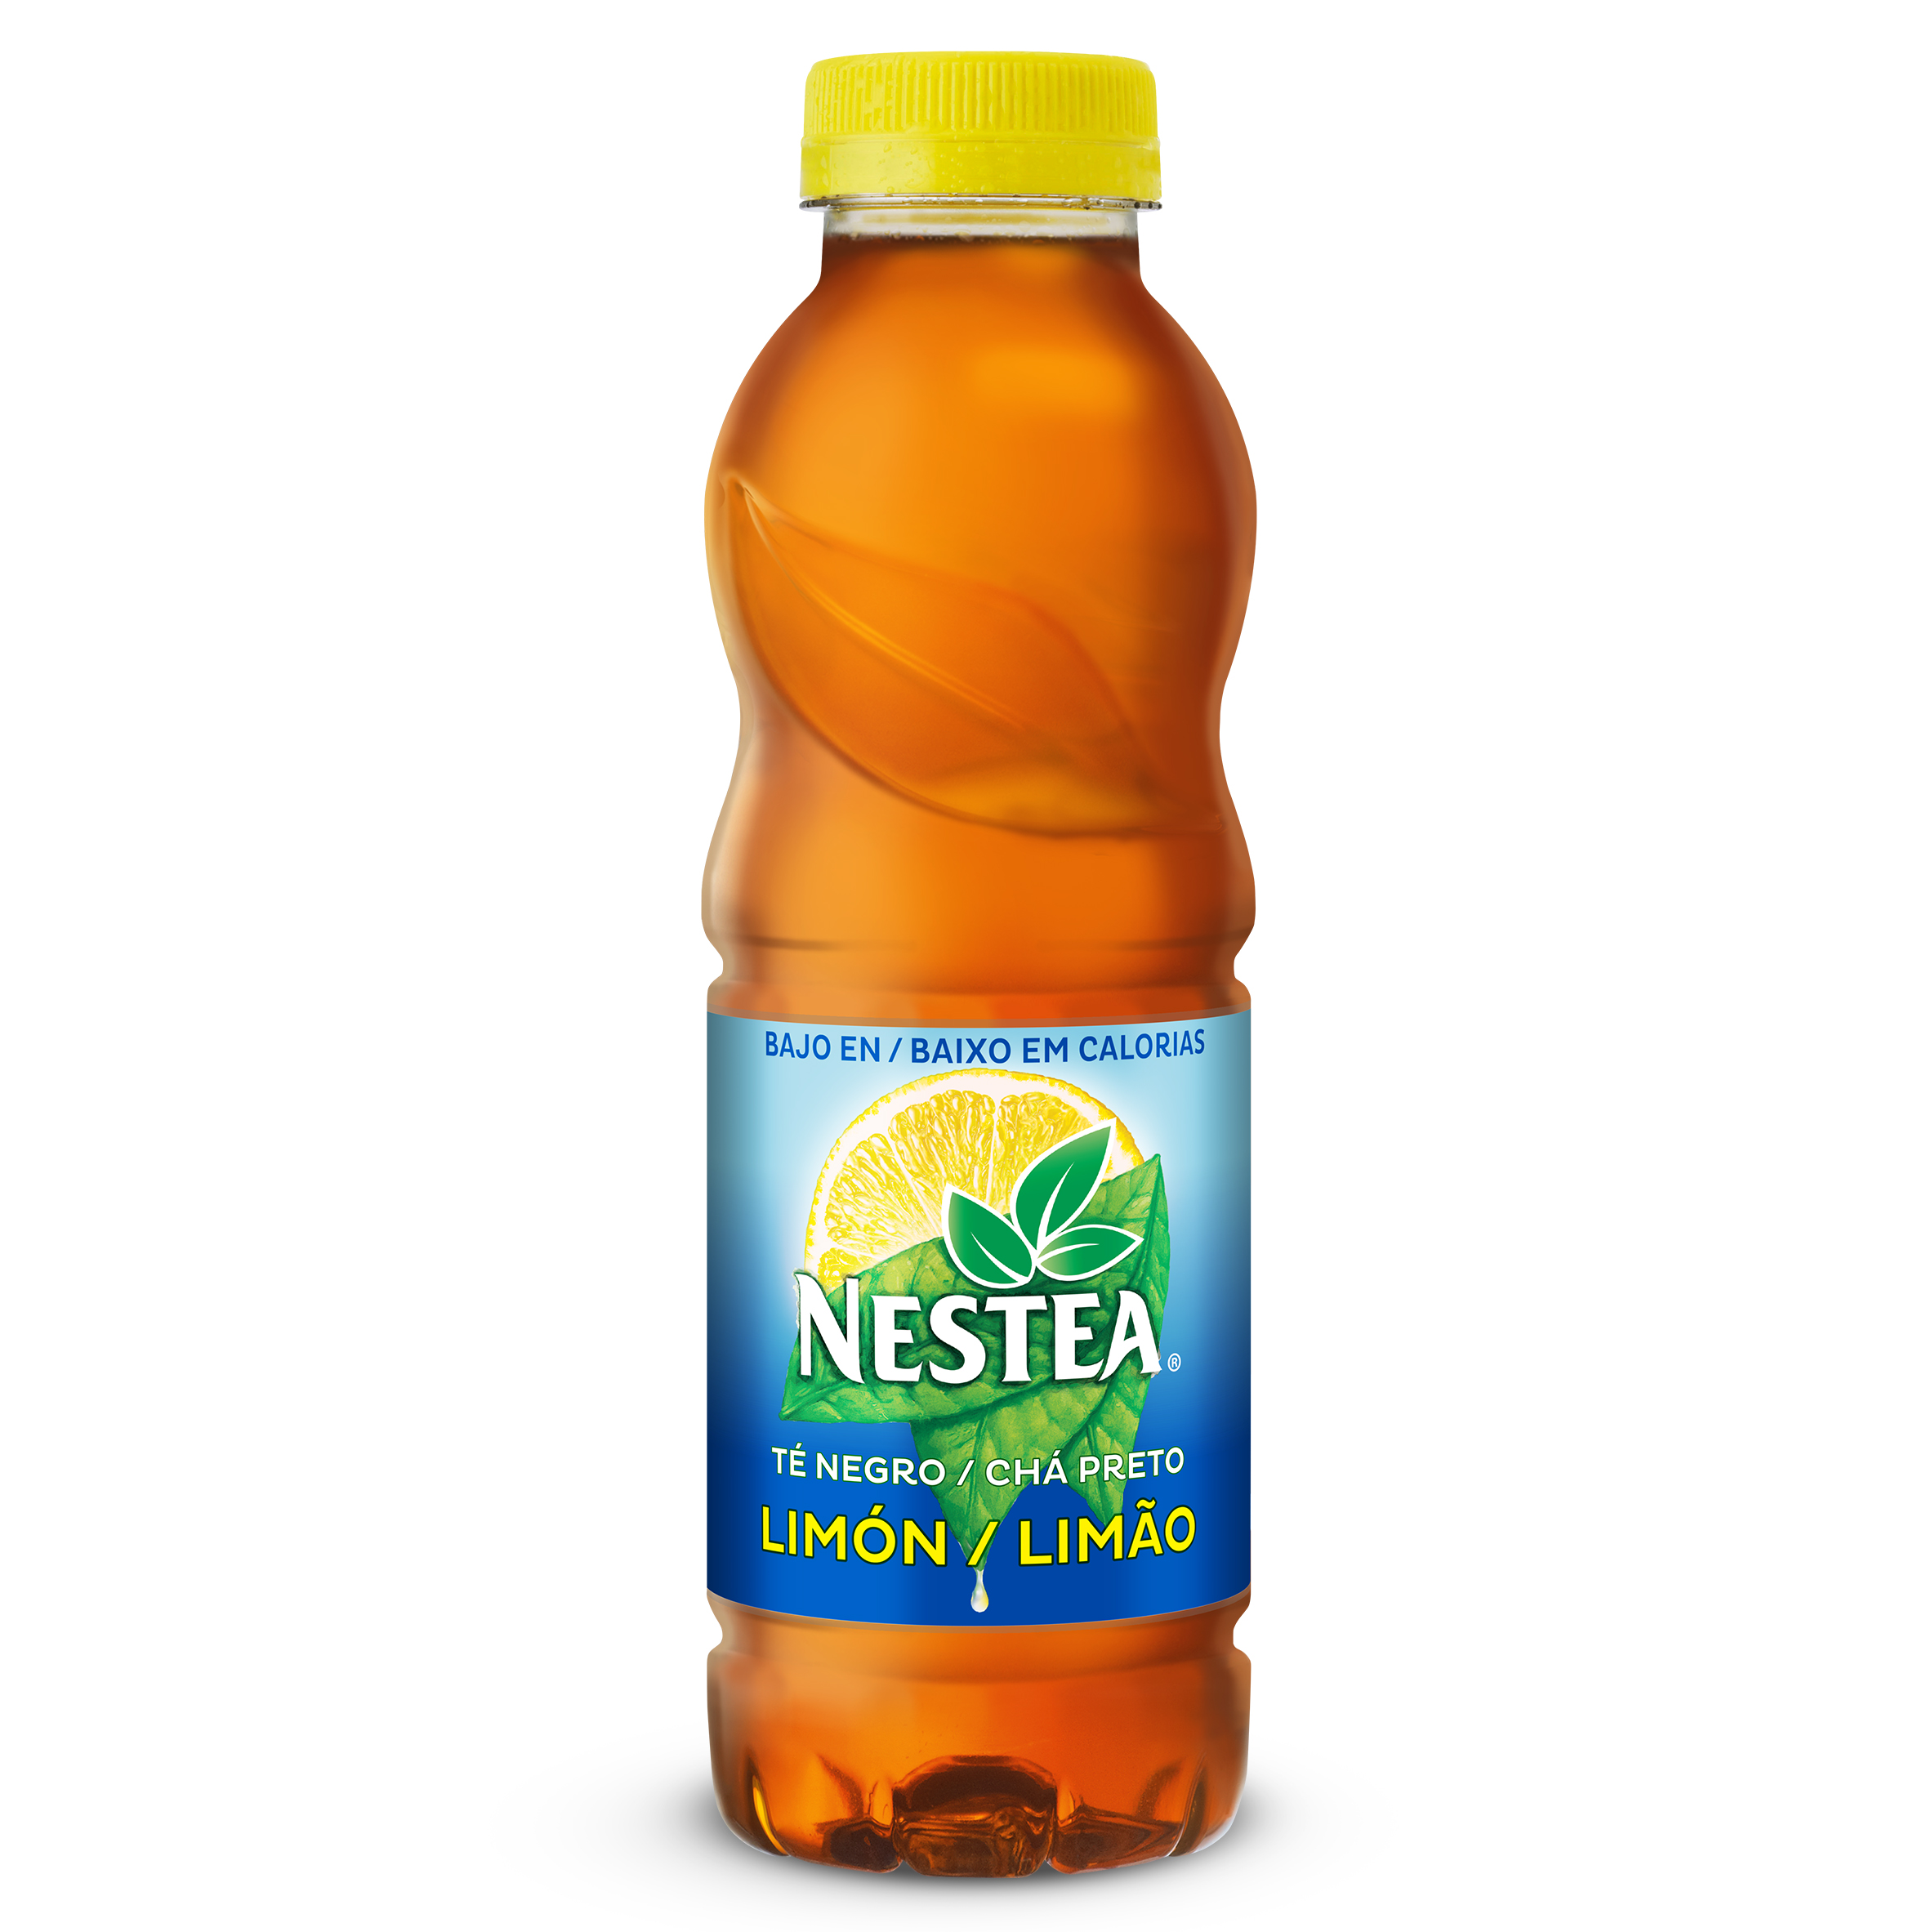 Nestea refresco te al limon de 50cl. en botella